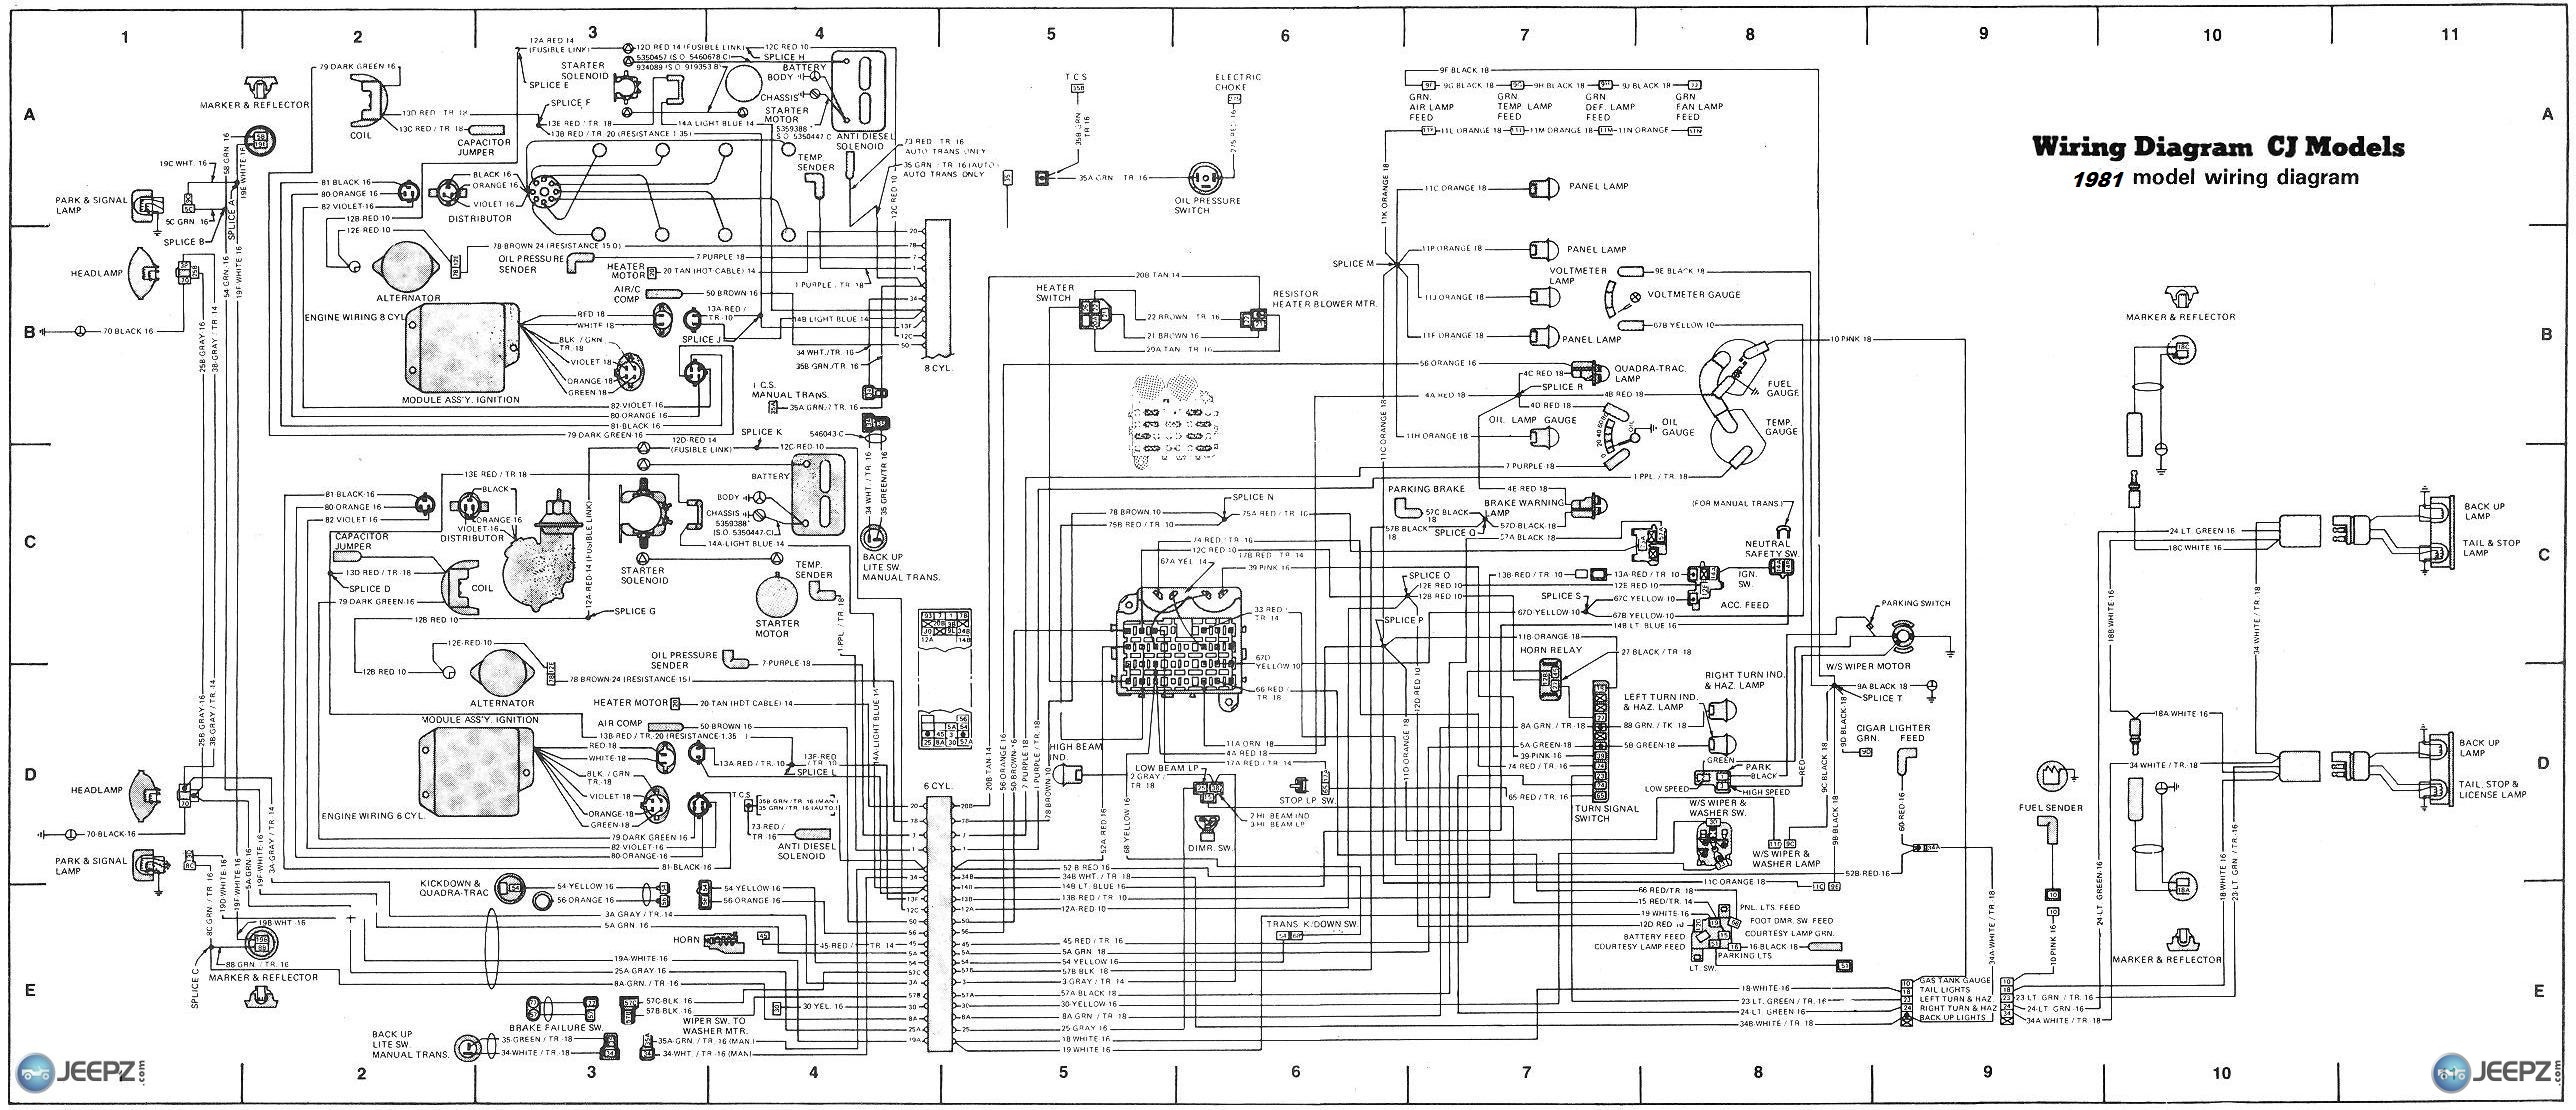 [DIAGRAM_4FR]  8FAAD 1981 Jeep Cj7 Wiring Diagram | Wiring Library | 1986 Jeep Cj7 Wiring Diagram |  | Wiring Library